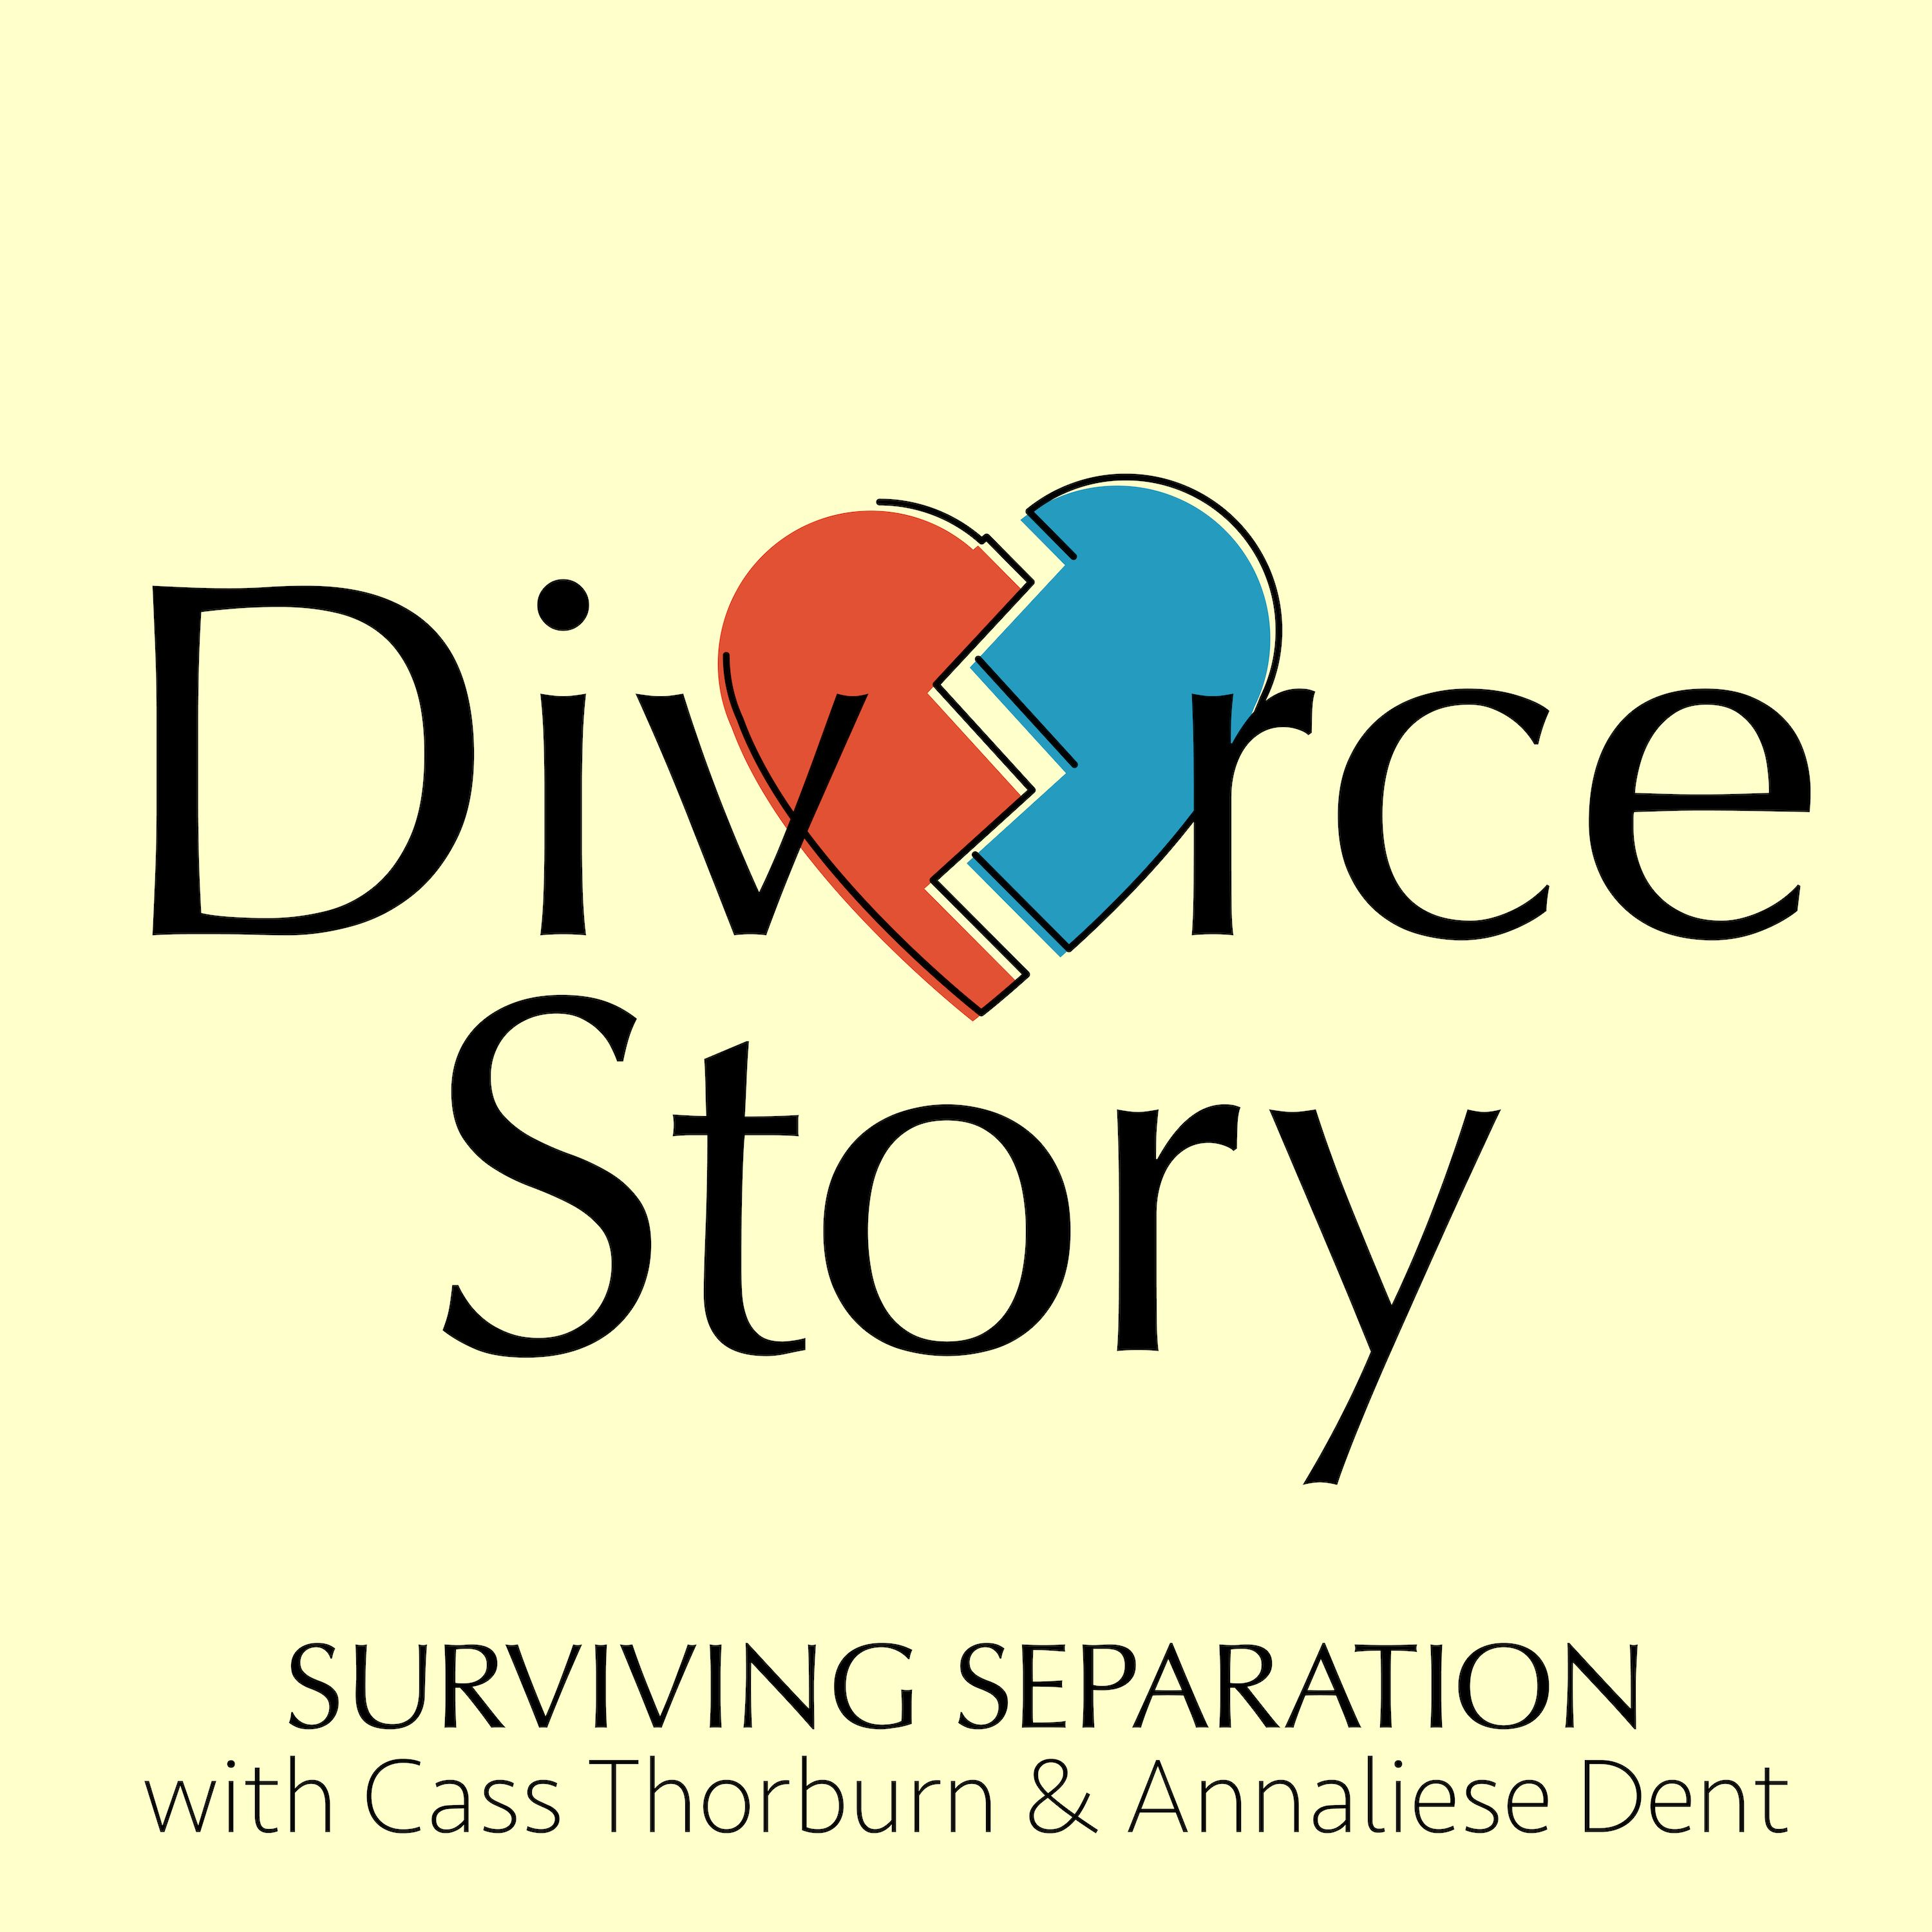 Divorce Story - How to have a civil relationship with your ex